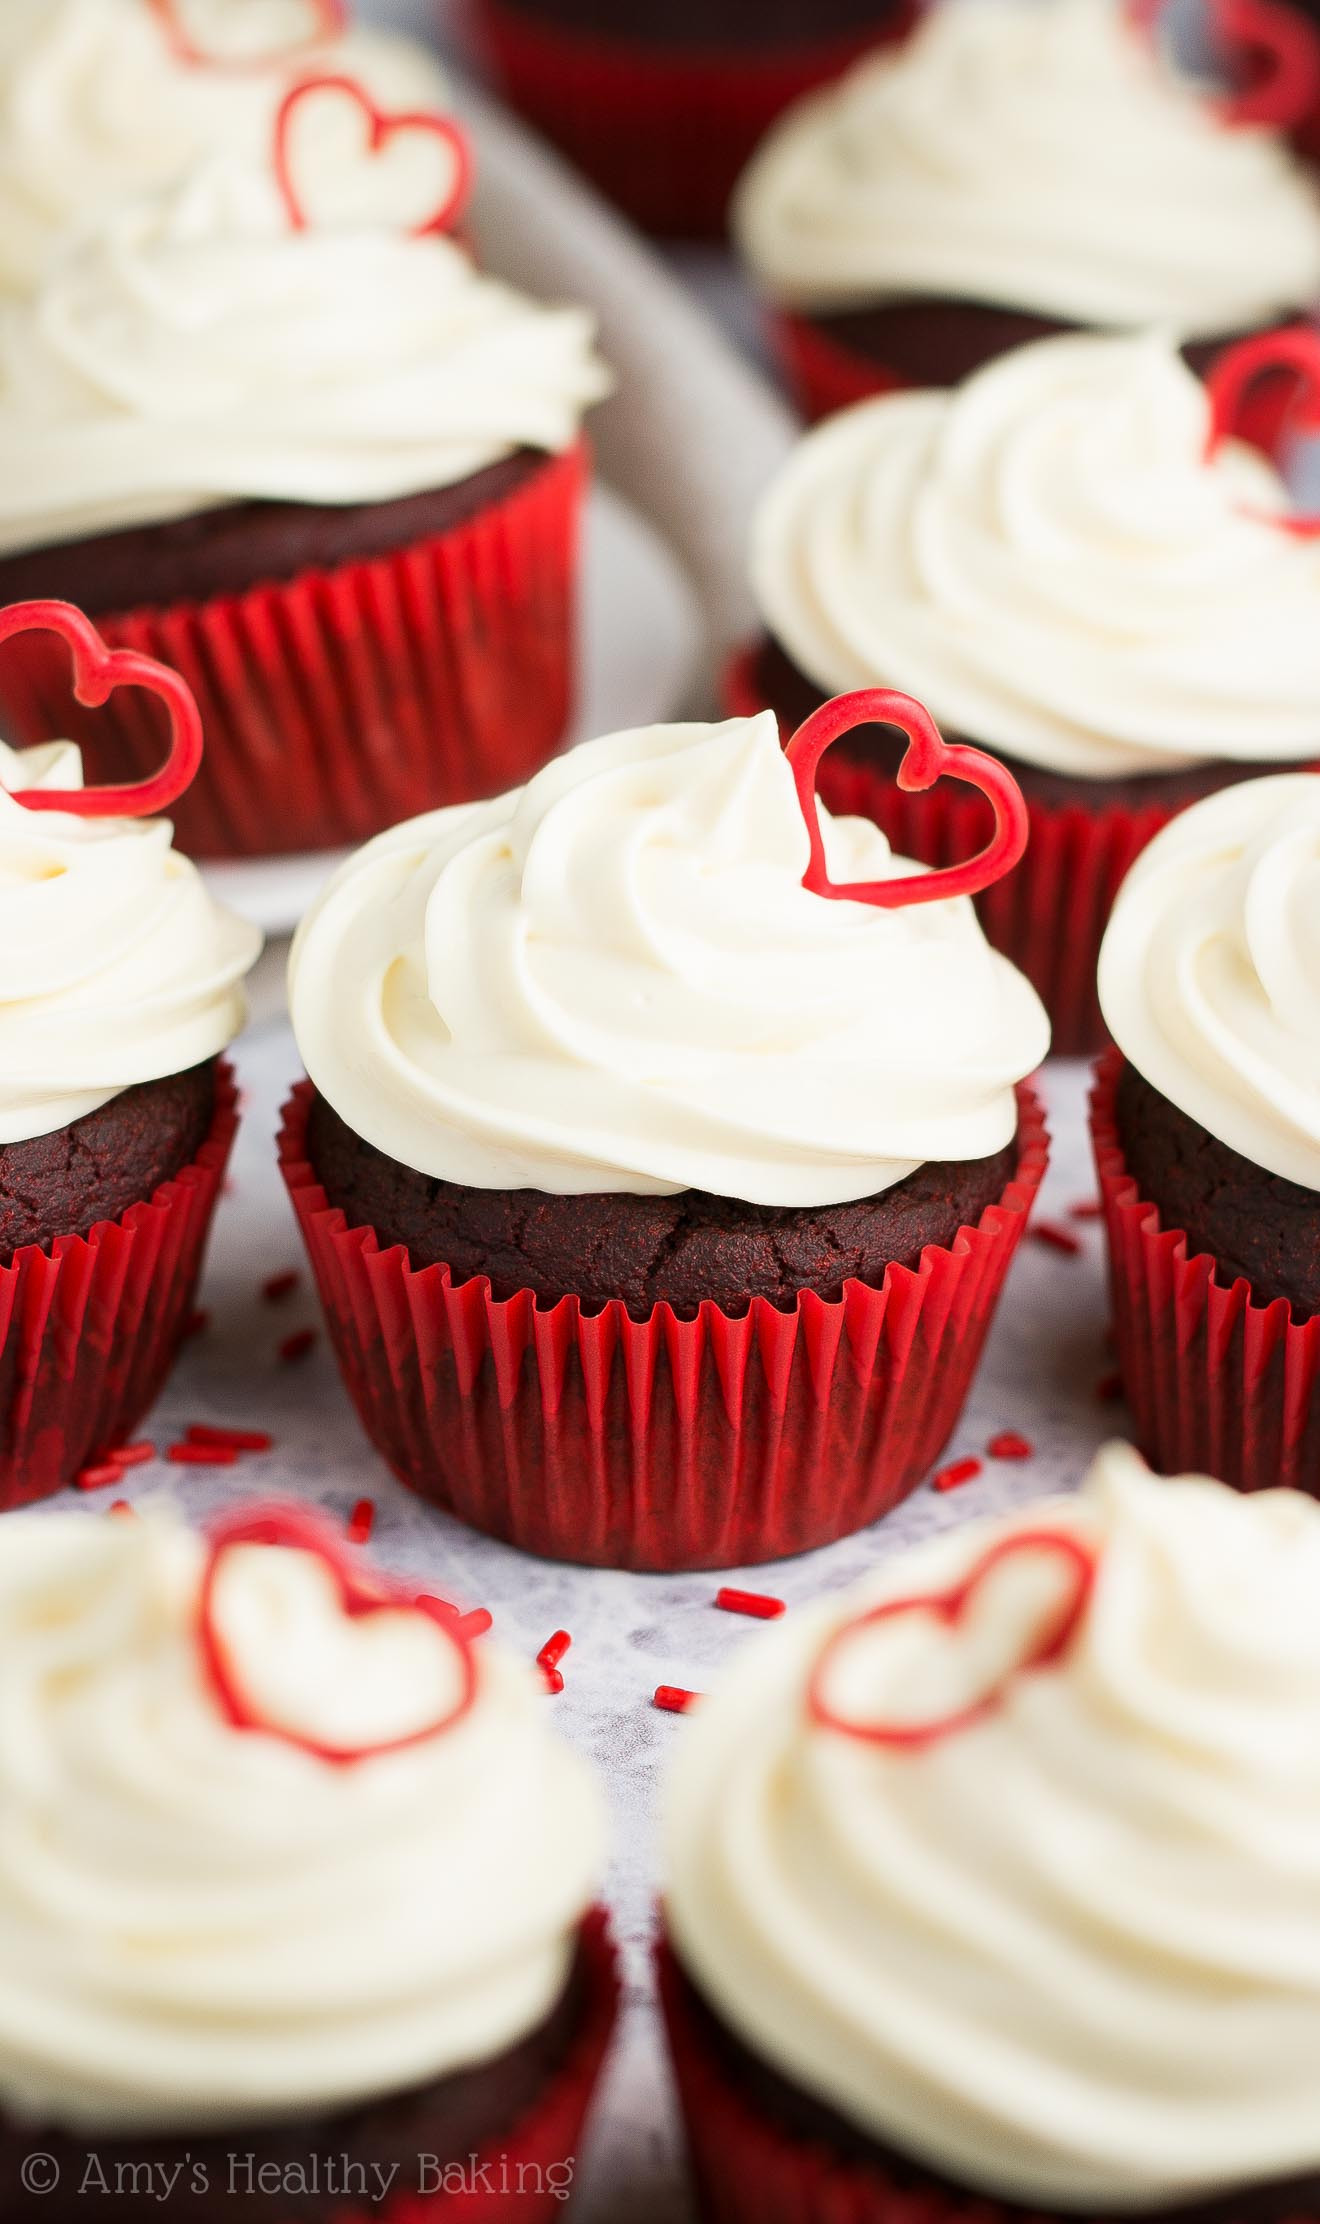 The ULTIMATE Healthy Red Velvet Cupcakes with cream cheese frosting + red heart decorations